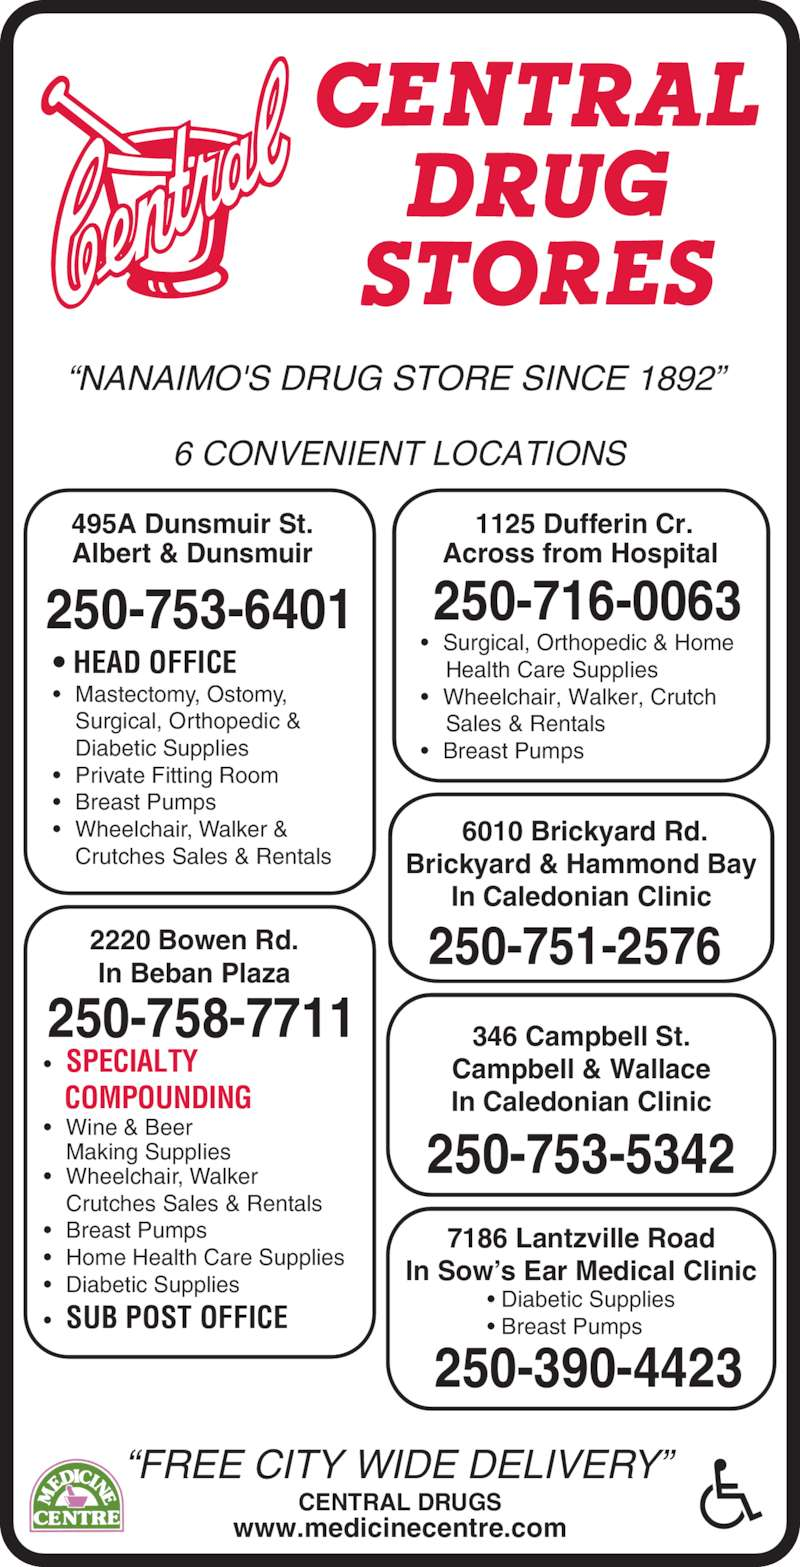 """Central Drugs (250-753-6401) - Display Ad - """"NANAIMO'S DRUG STORE SINCE 1892""""  """"FREE CITY WIDE DELIVERY"""" CENTRAL DRUGS www.medicinecentre.com 6 CONVENIENT LOCATIONS 495A Dunsmuir St. Albert & Dunsmuir 250-753-6401 • HEAD OFFICE • Mastectomy, Ostomy,  Surgical, Orthopedic &  Diabetic Supplies • Private Fitting Room • Breast Pumps • Wheelchair, Walker &  Crutches Sales & Rentals 346 Campbell St. Campbell & Wallace In Caledonian Clinic 250-753-5342  1125 Dufferin Cr. Across from Hospital 250-716-0063 • Surgical, Orthopedic & Home      Health Care Supplies • Wheelchair, Walker, Crutch     Sales & Rentals • Breast Pumps  6010 Brickyard Rd. Brickyard & Hammond Bay In Caledonian Clinic 250-751-25762220 Bowen Rd.In Beban Plaza • SPECIALTY    COMPOUNDING • Wine & Beer  Making Supplies • Wheelchair, Walker  Crutches Sales & Rentals • Breast Pumps • Home Health Care Supplies • Diabetic Supplies • SUB POST OFFICE 250-758-7711 7186 Lantzville Road In Sow's Ear Medical Clinic • Diabetic Supplies • Breast Pumps 250-390-4423"""